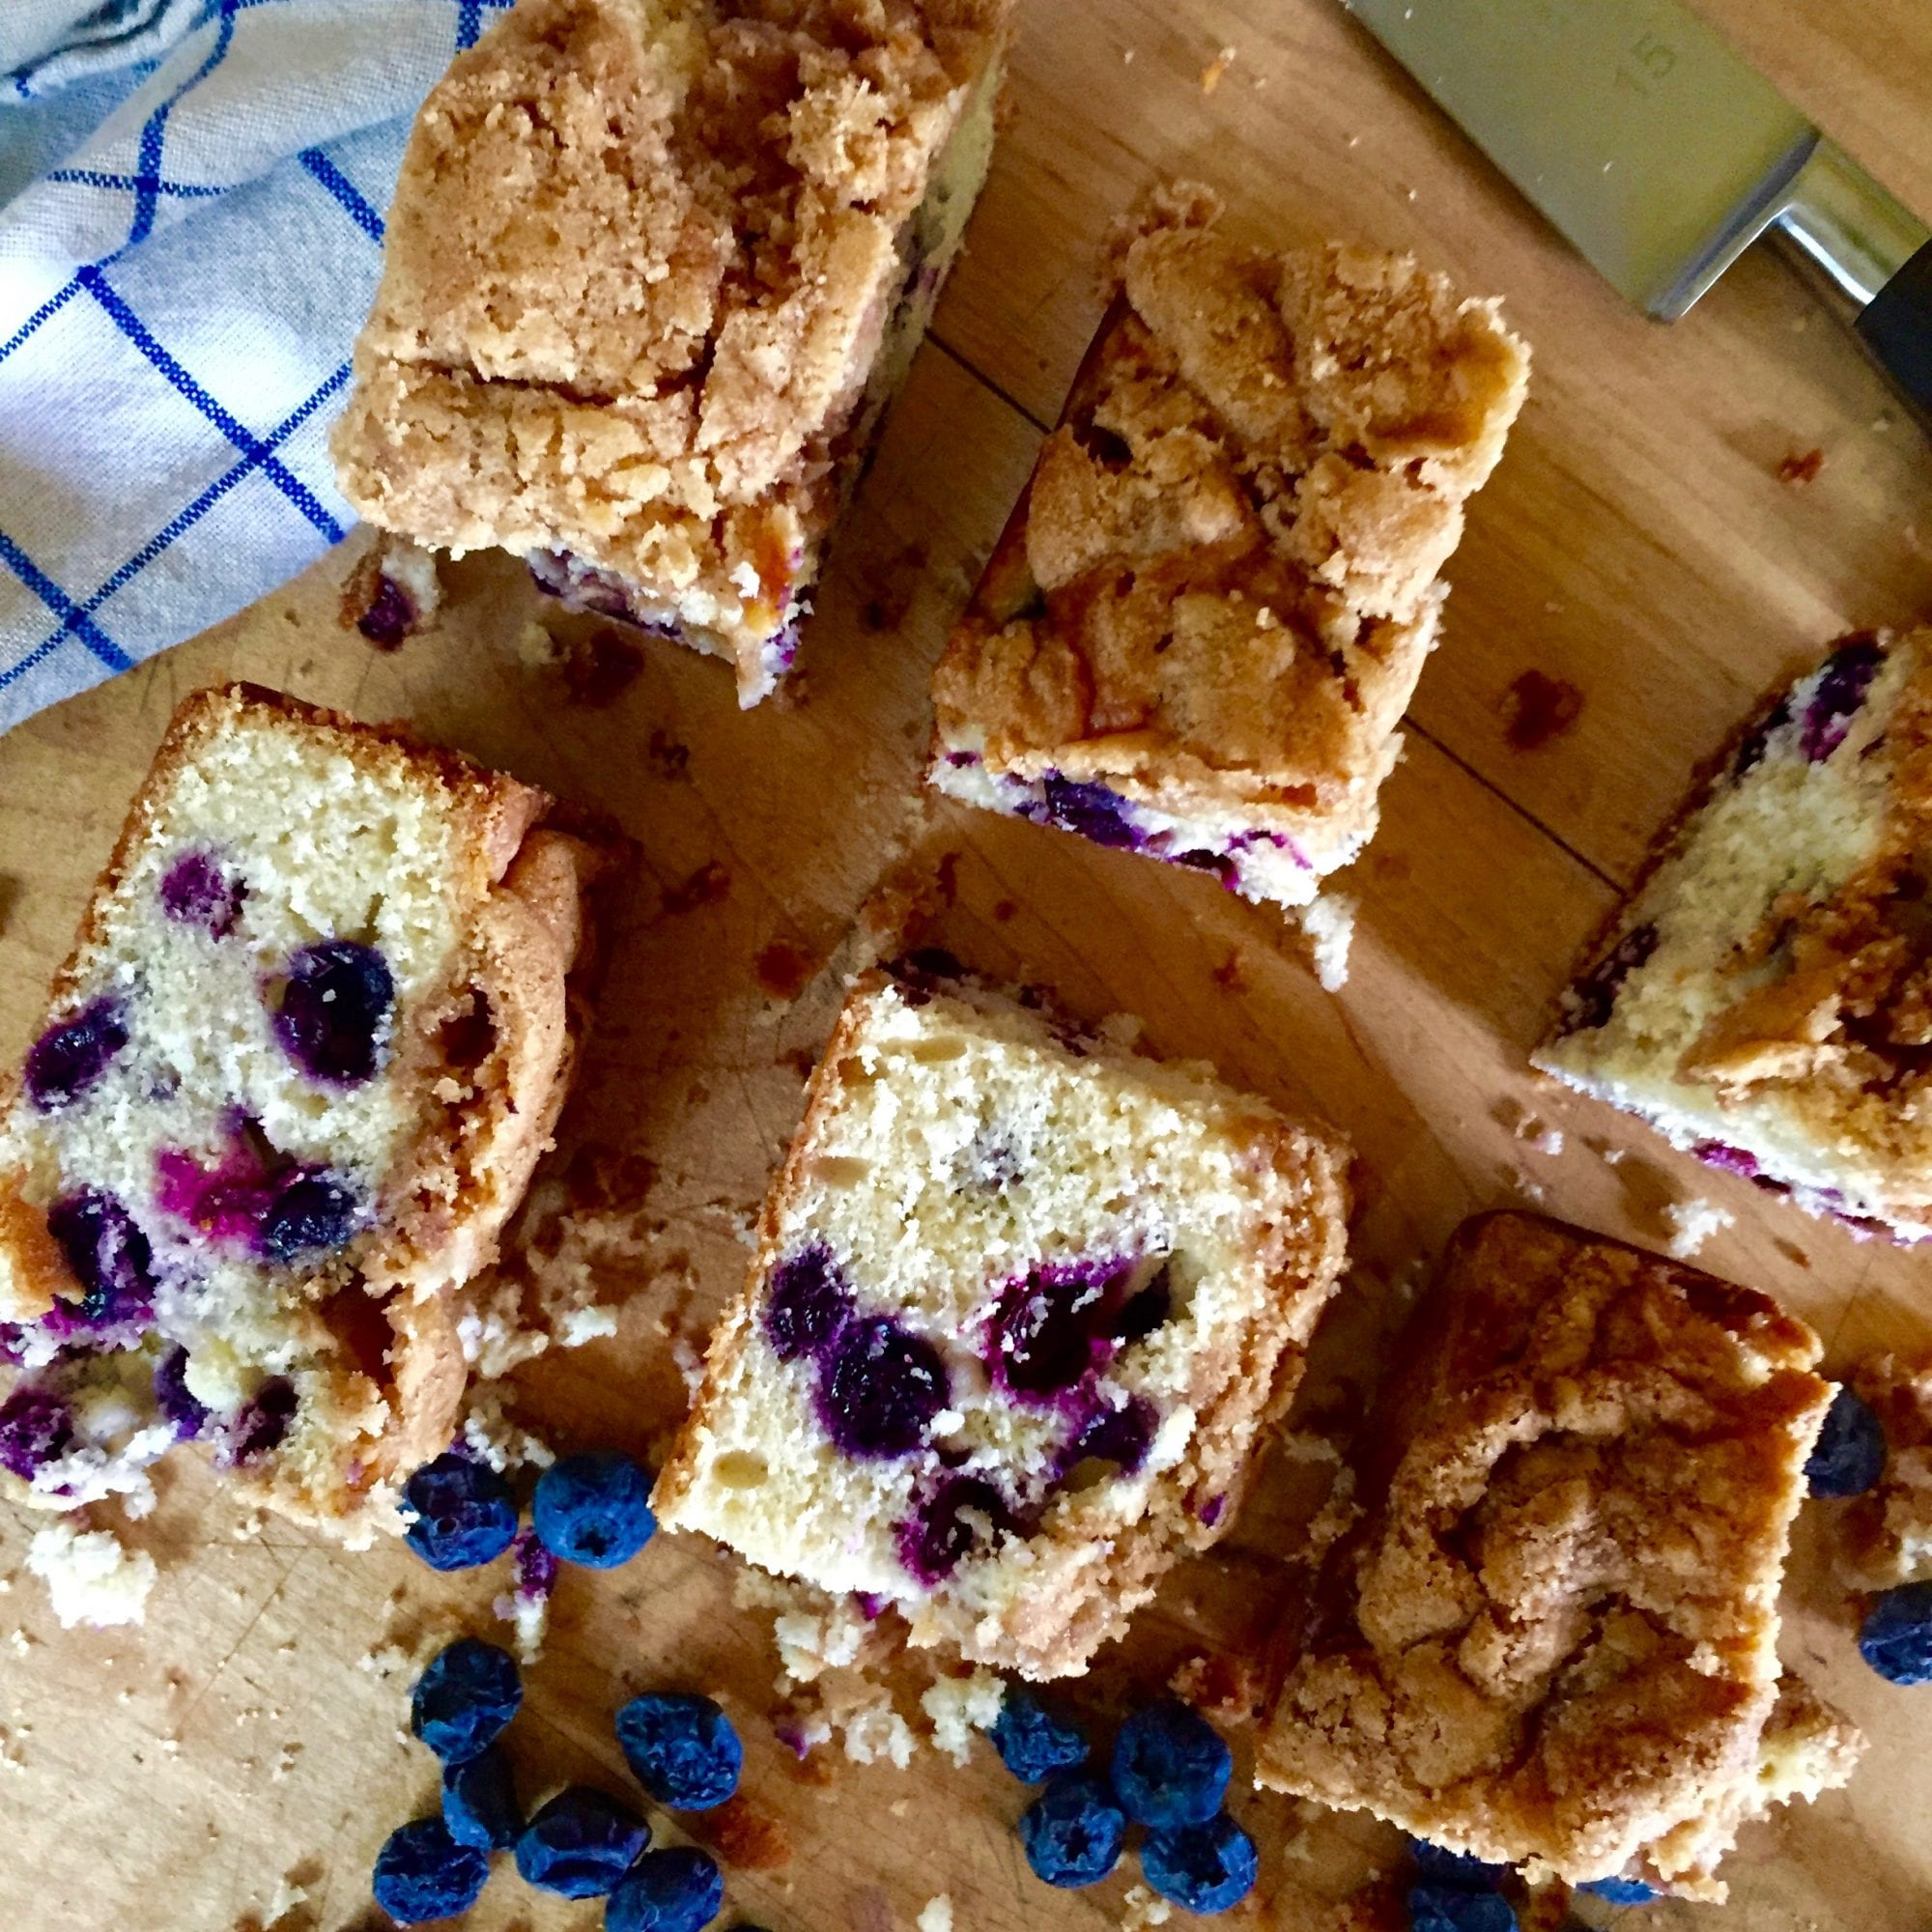 Blueberry Buttermilk Snack Cake – Jessie Sheehan Bakes